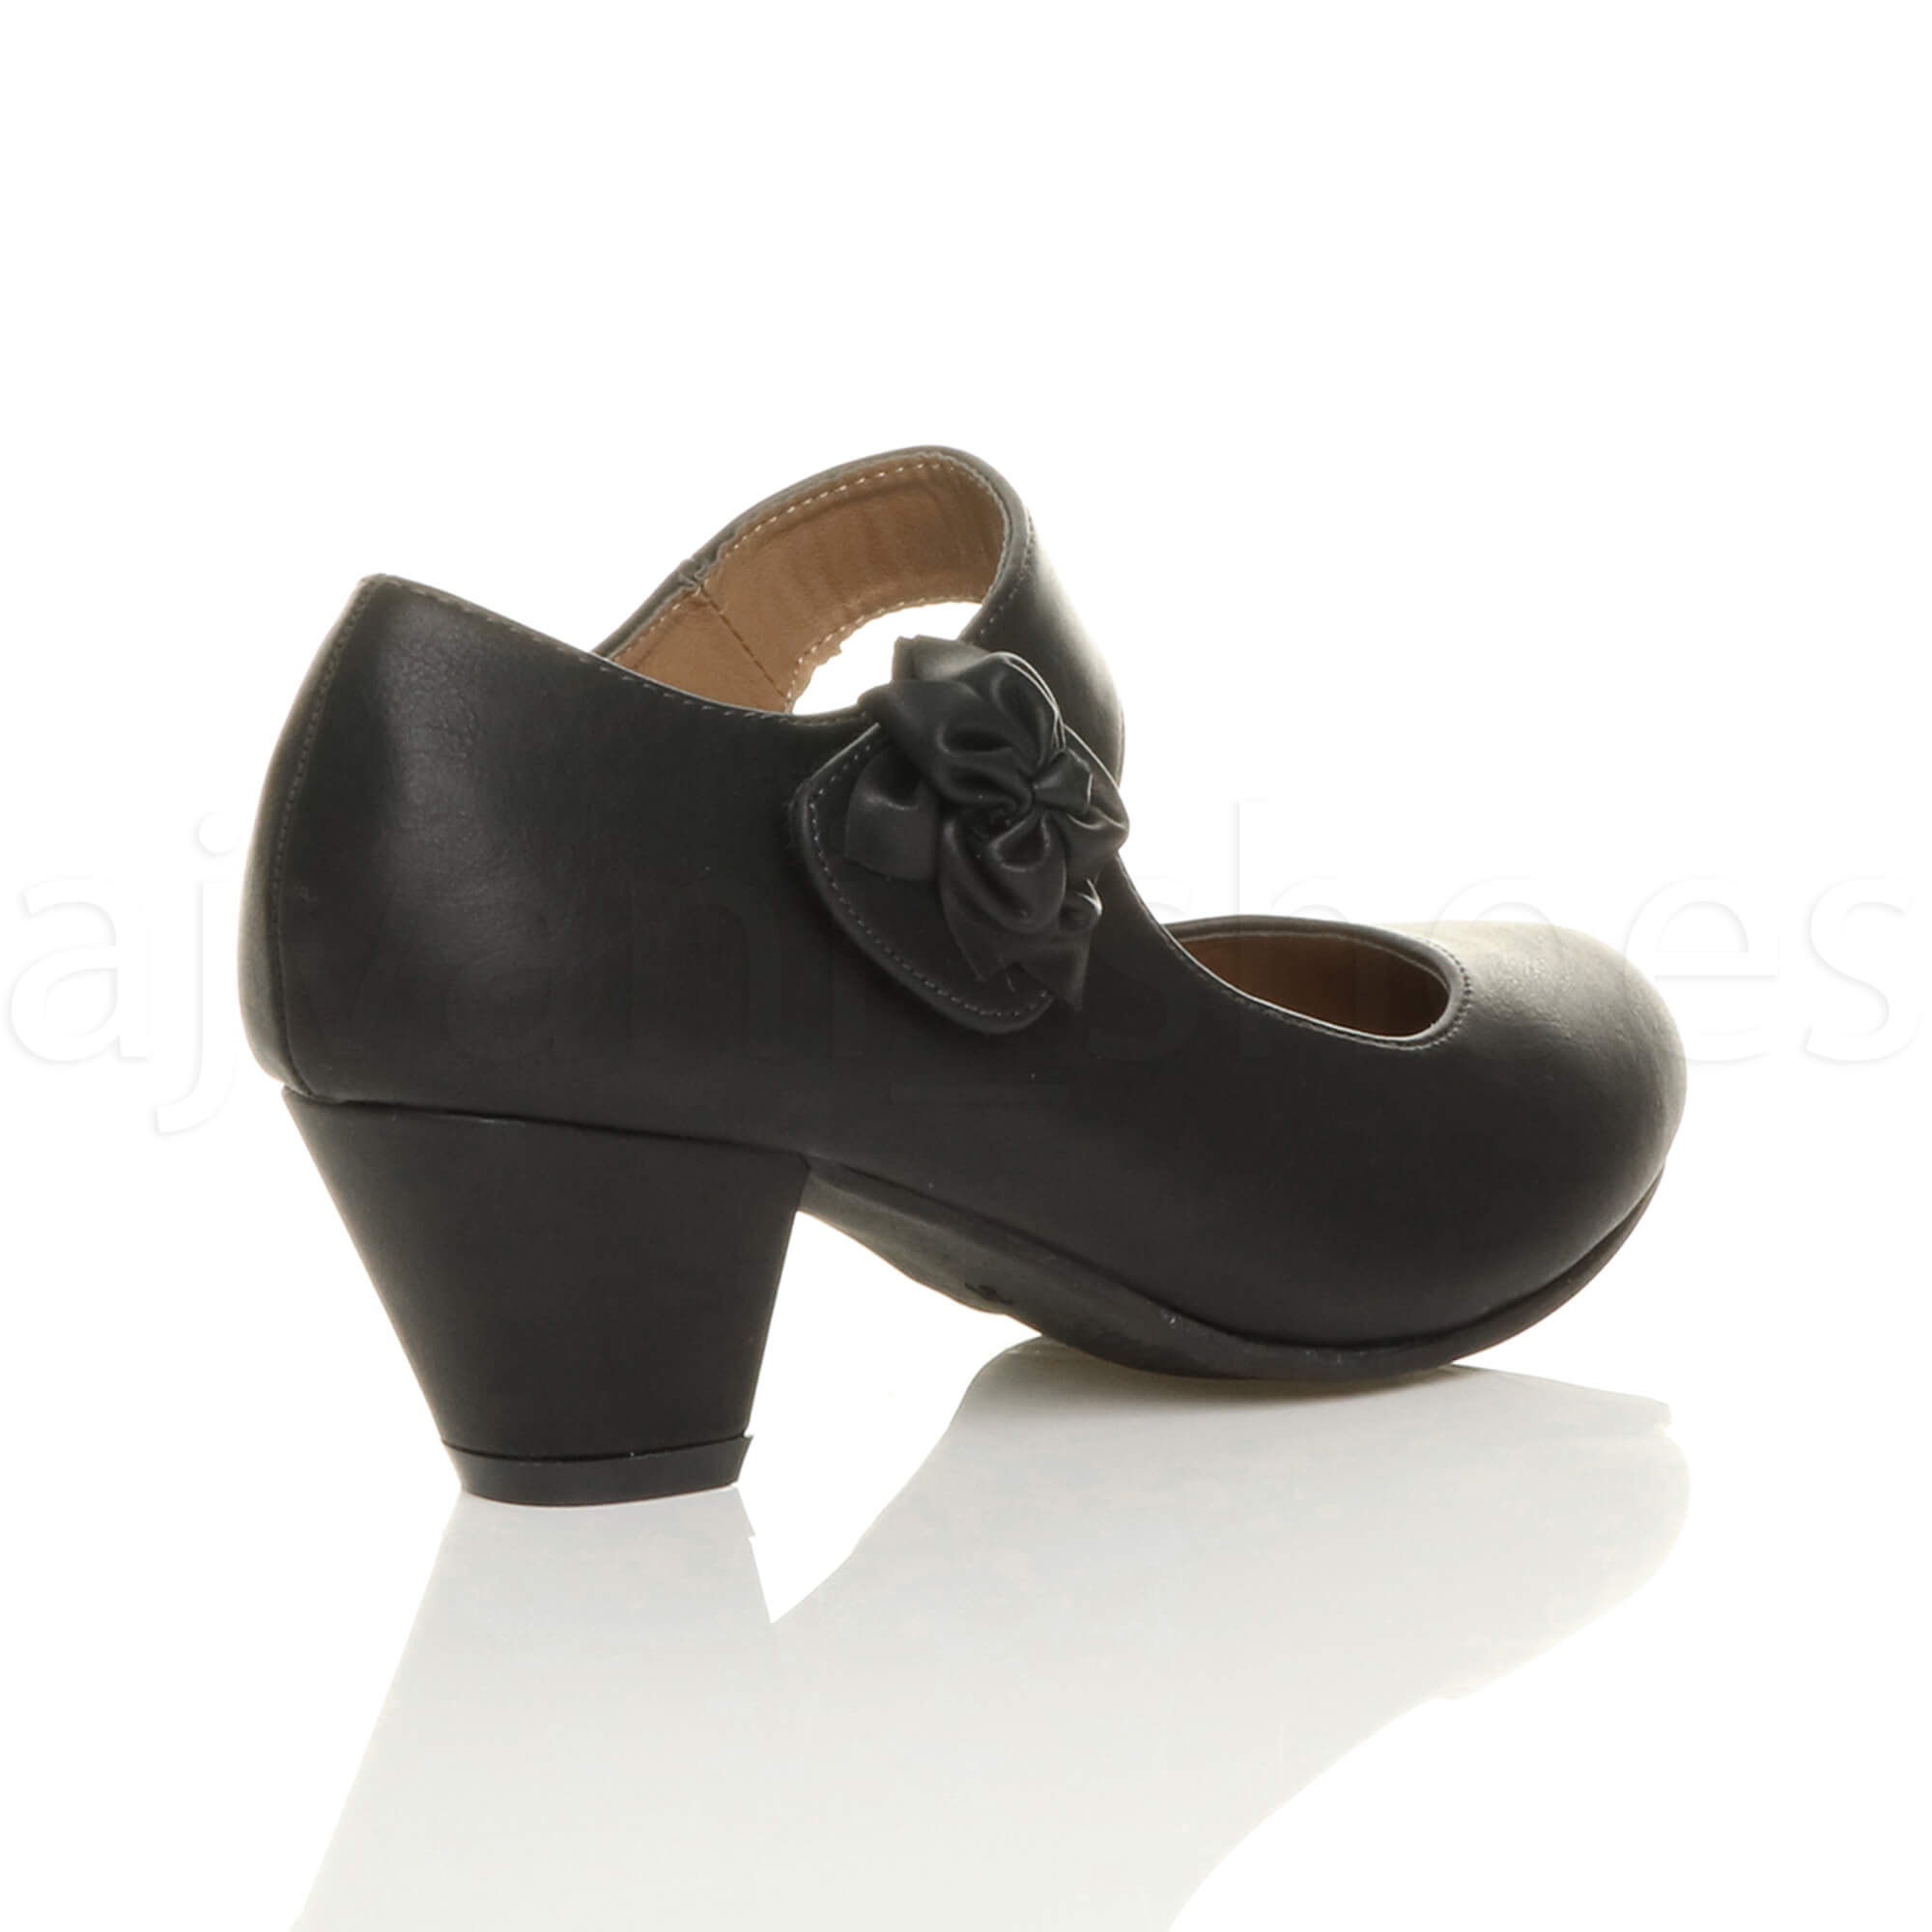 WOMENS-LADIES-MID-BLOCK-HEEL-PADDED-COMFORT-MARY-JANE-LEATHER-LINED-SHOES-SIZE